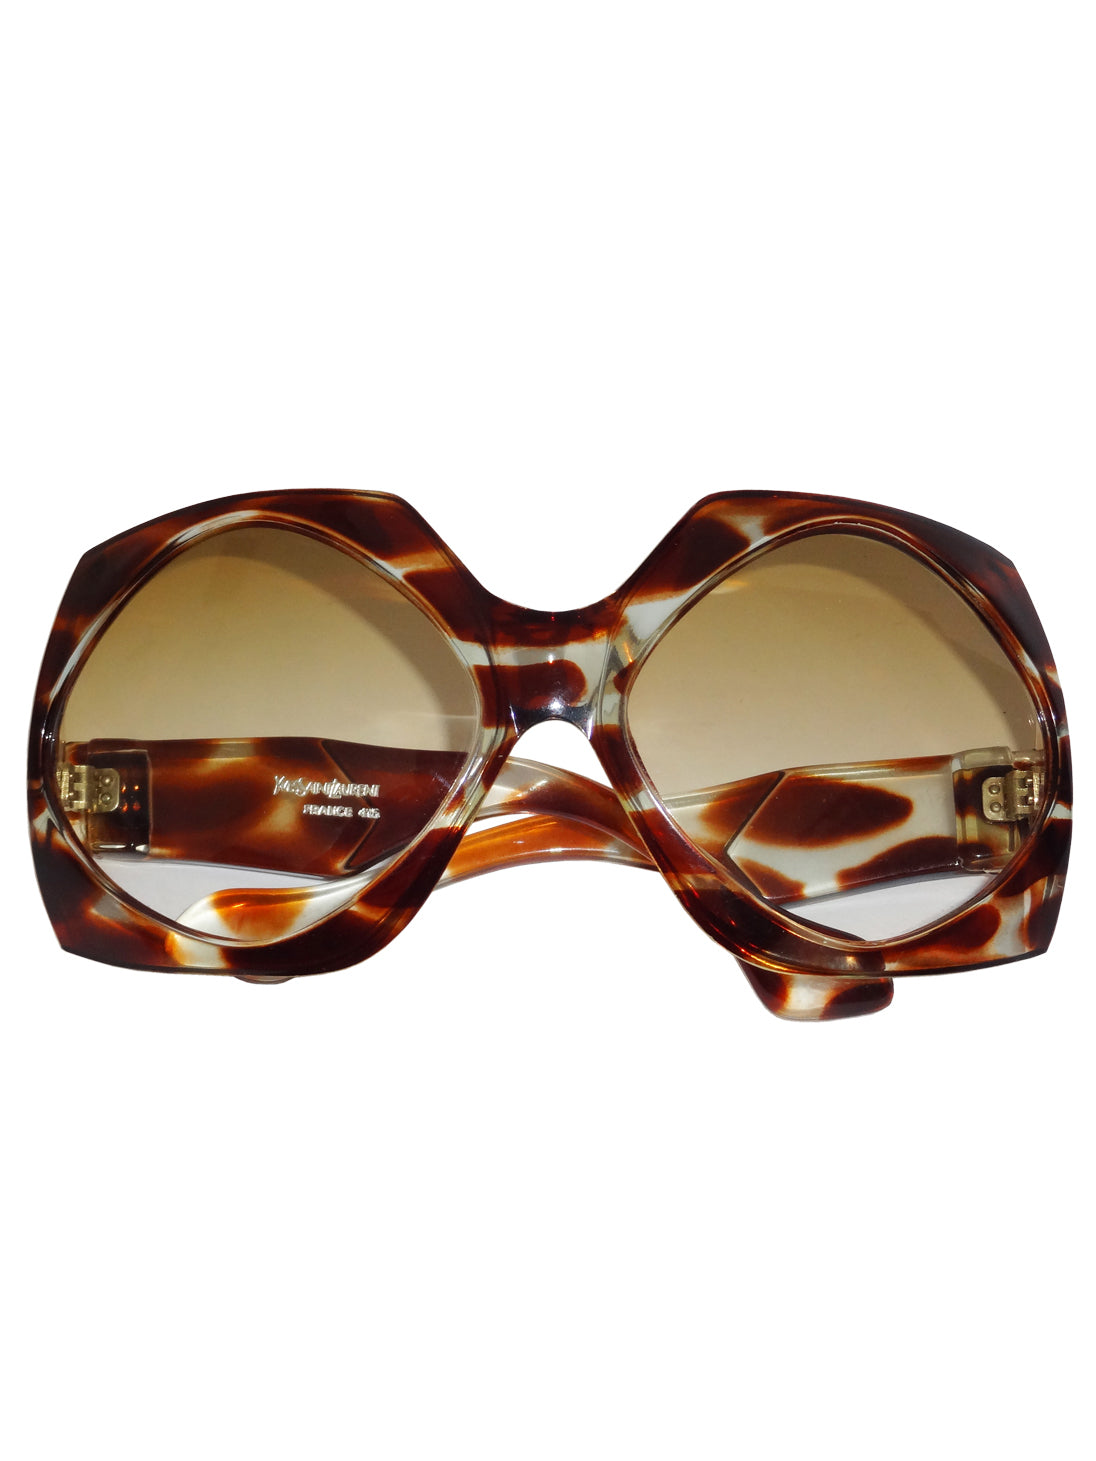 YVES SAINT LAURENT Mod. 415 1970s Vintage Sunglasses